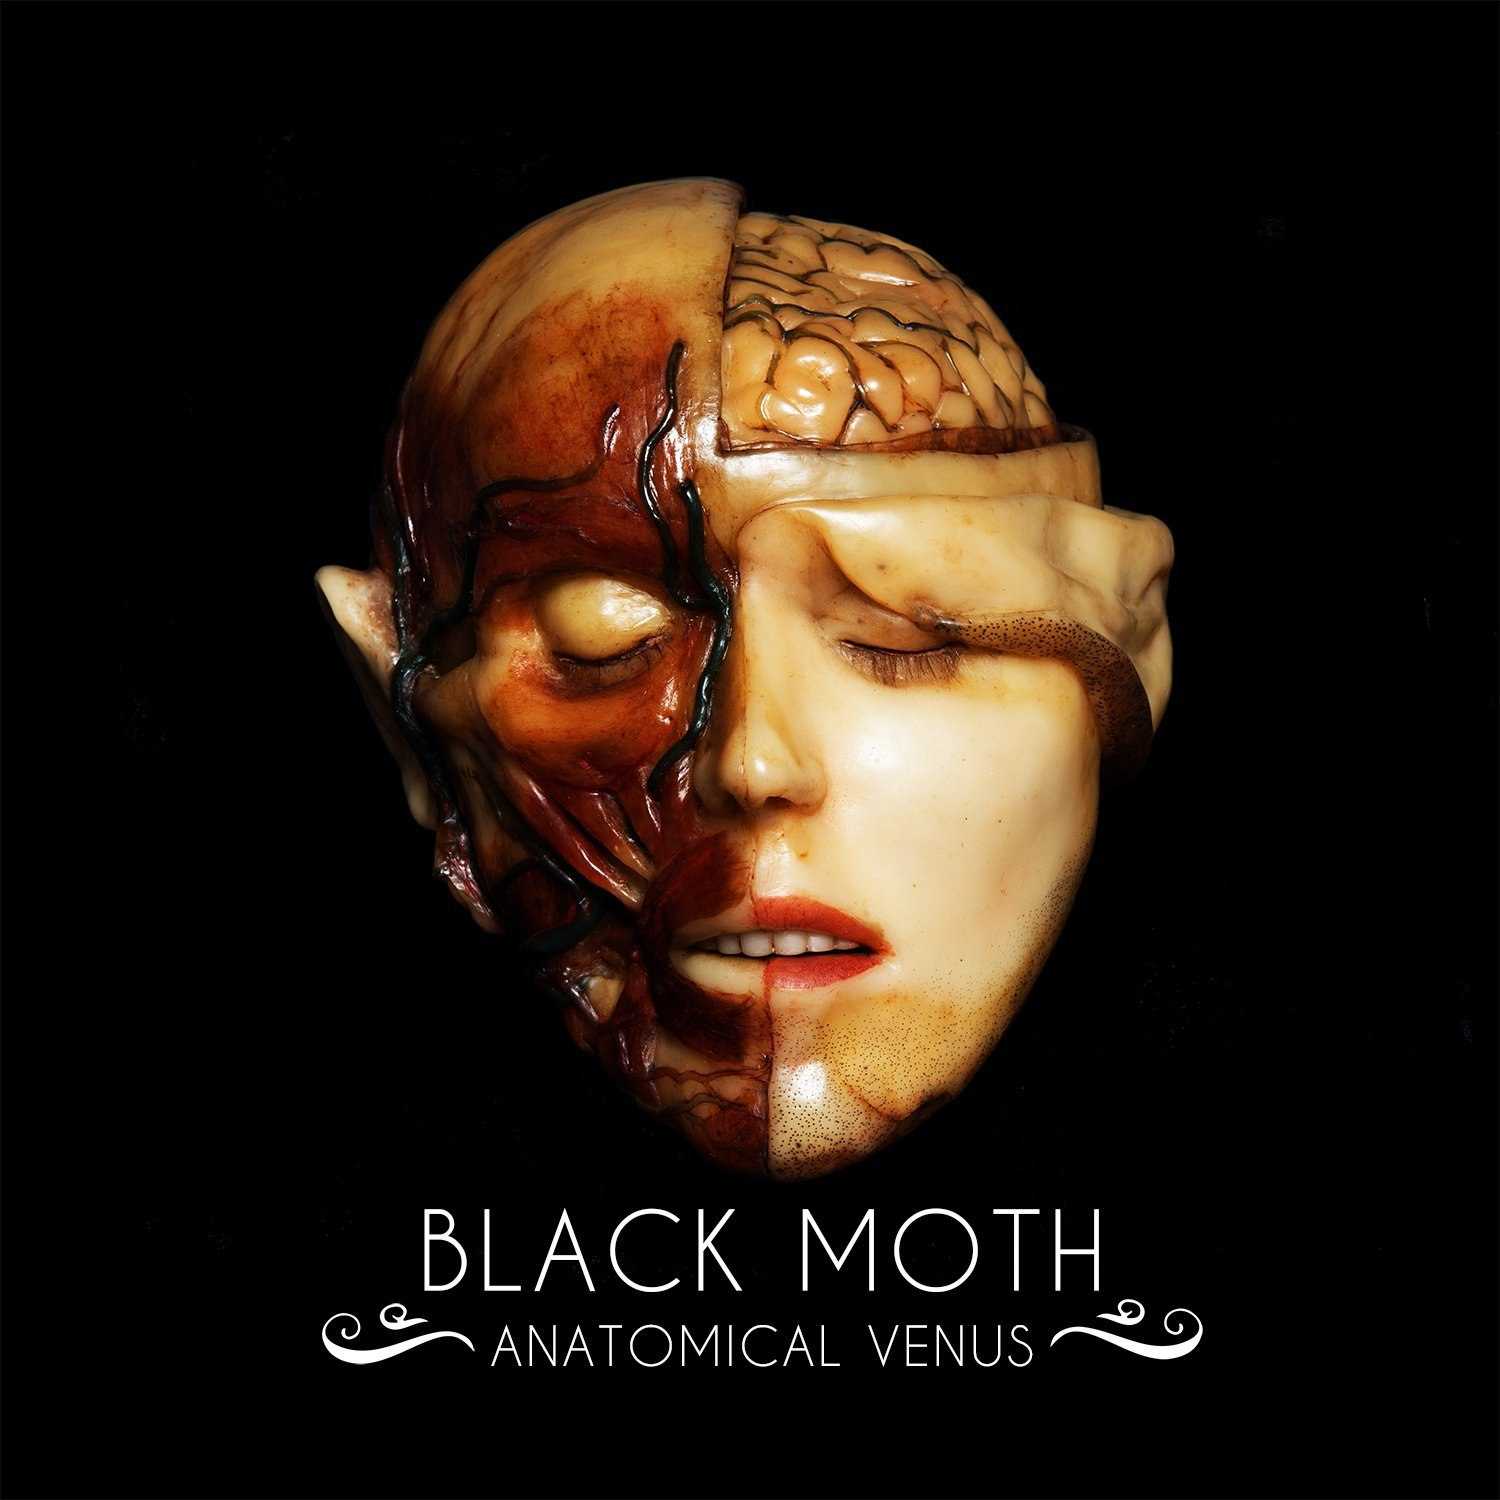 Black Moth - Anatomical Venus (2018)